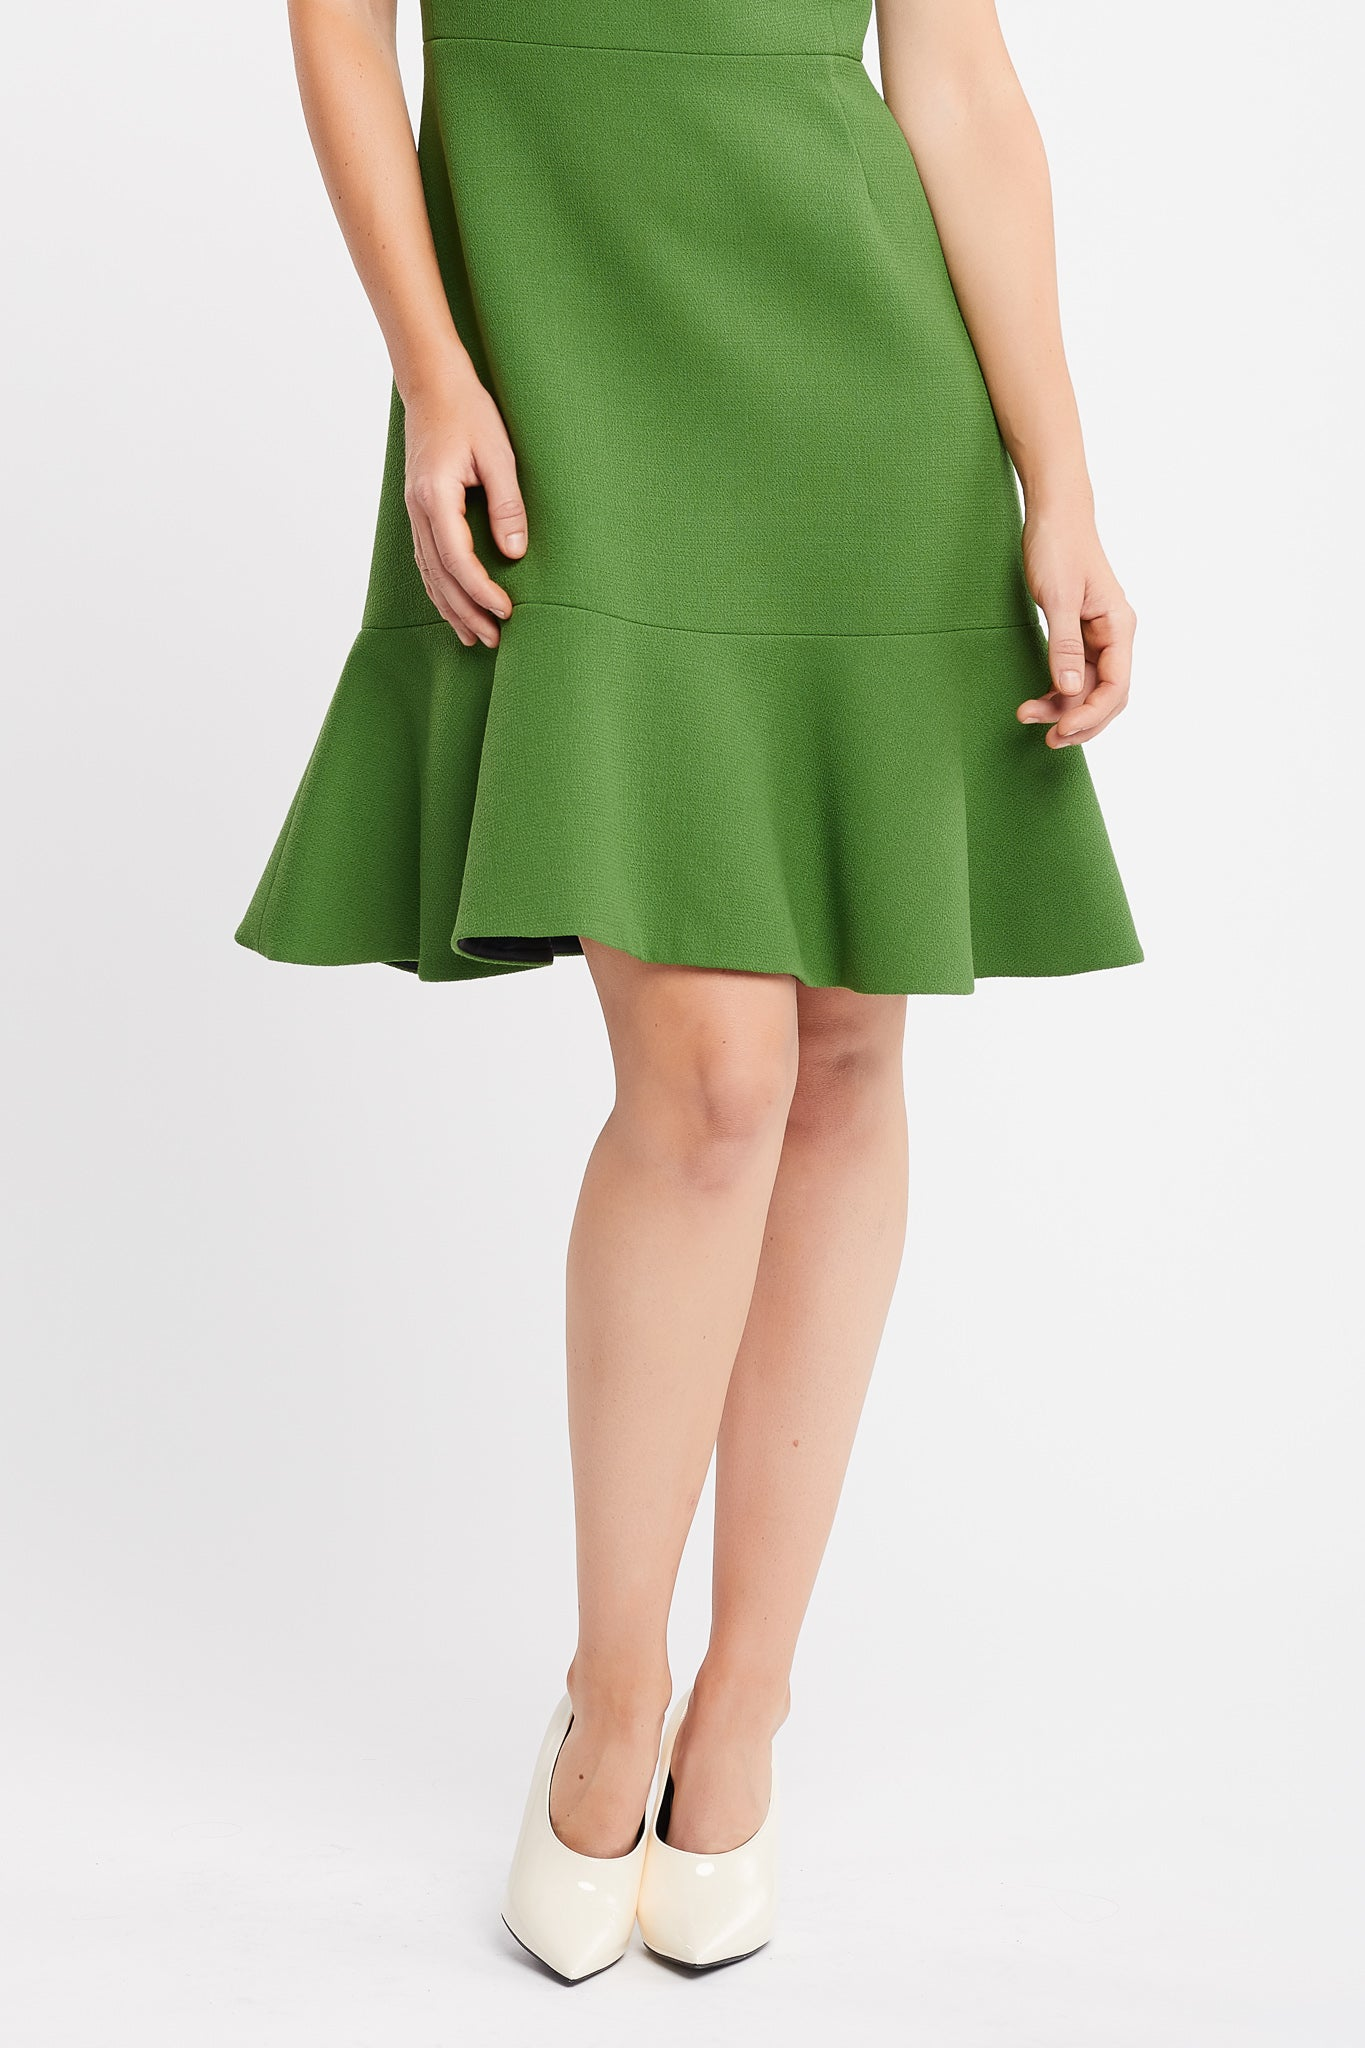 Alicia Short Sleeve A-Line Green Work Dress and Cocktail Dress